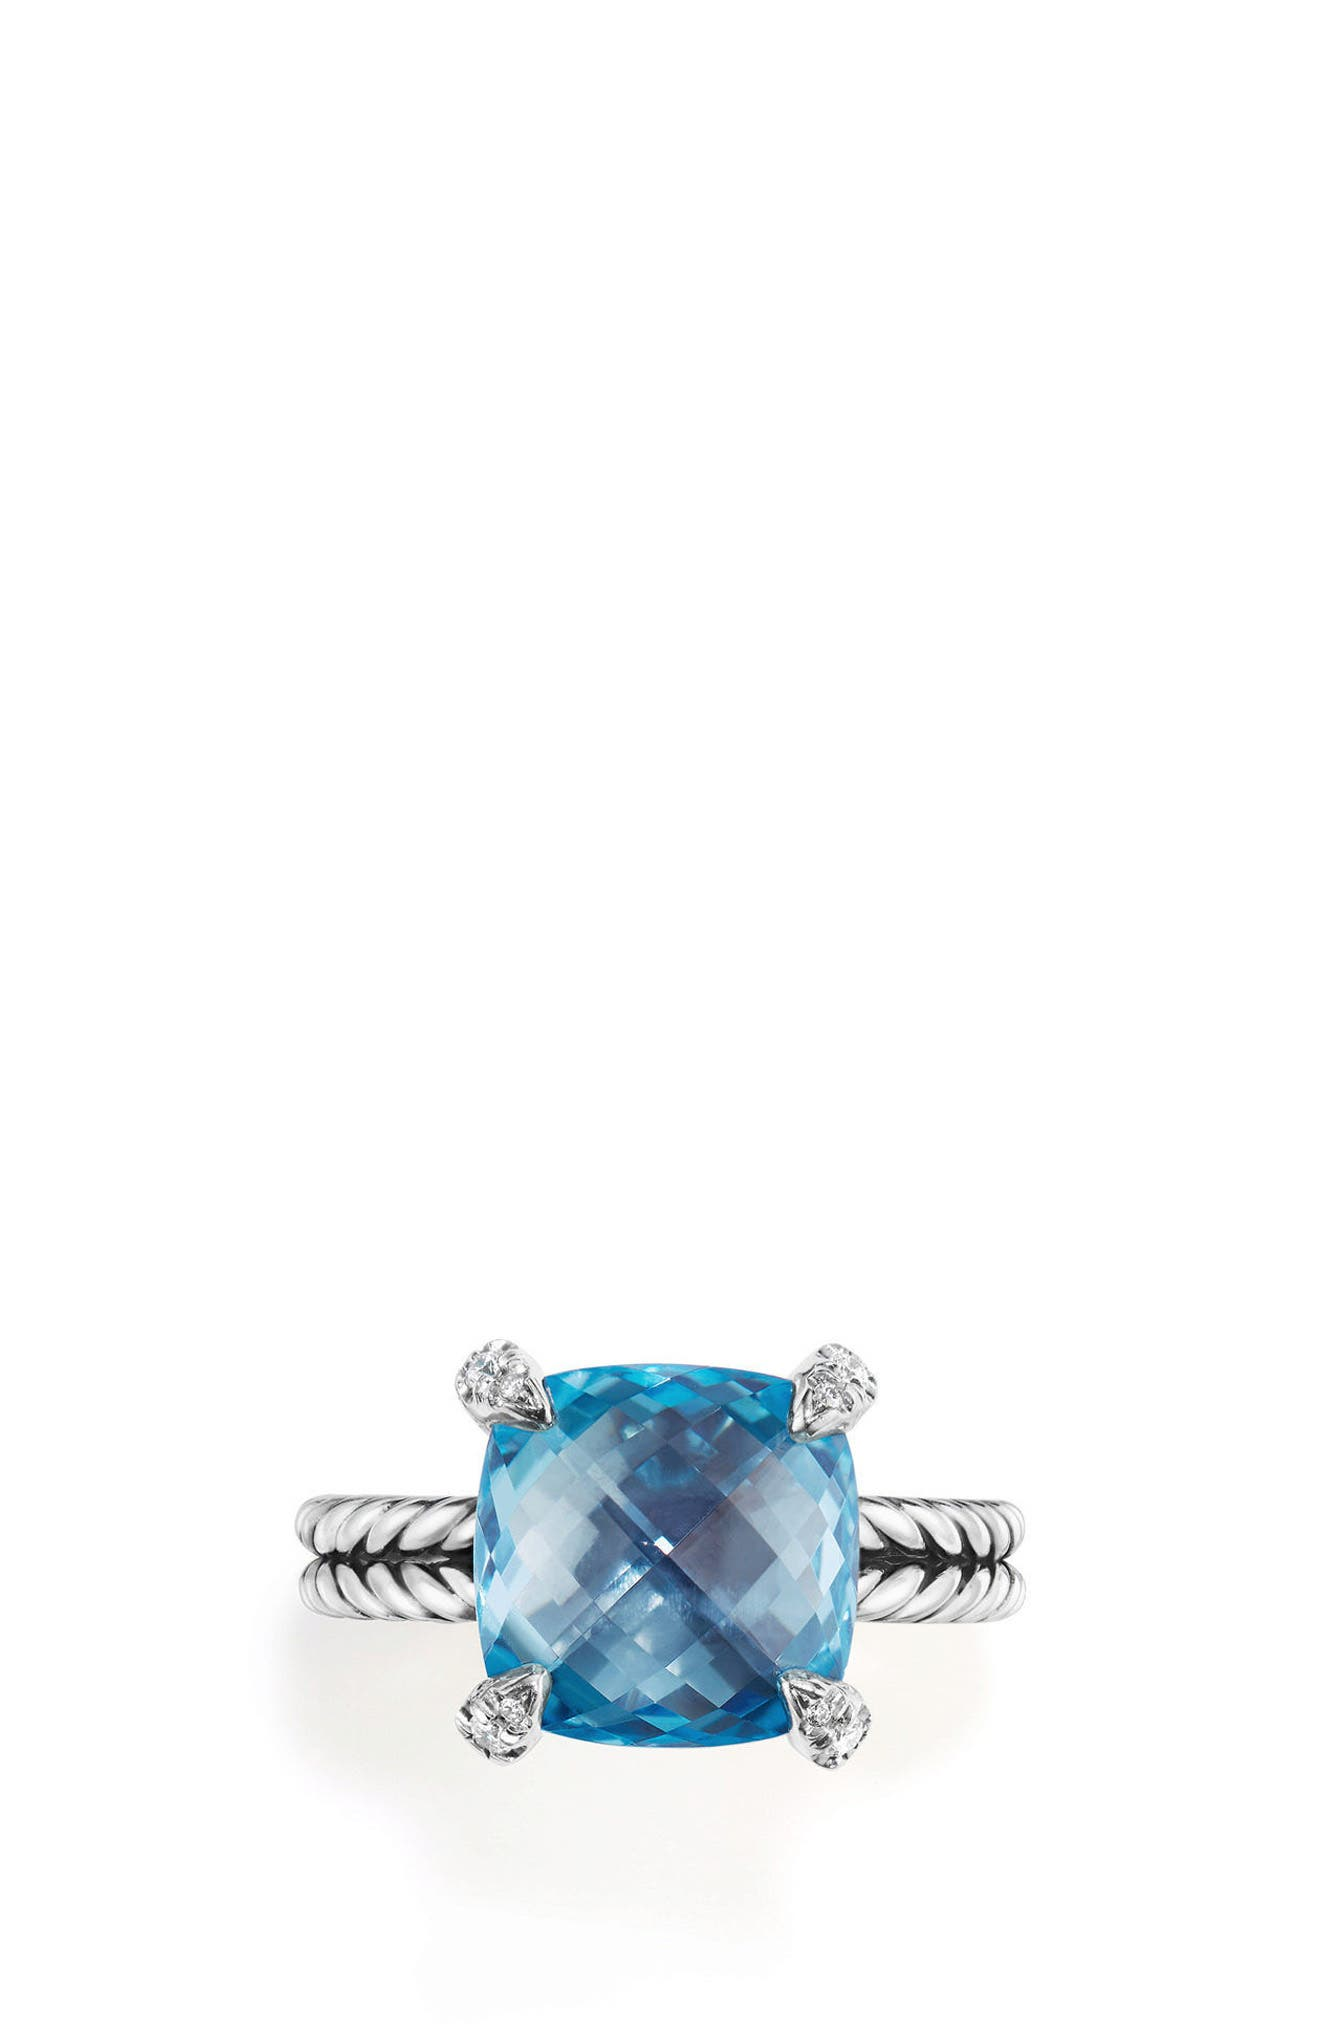 David Yurman Châtelaine Ring with Semiprecious Stone & Diamonds